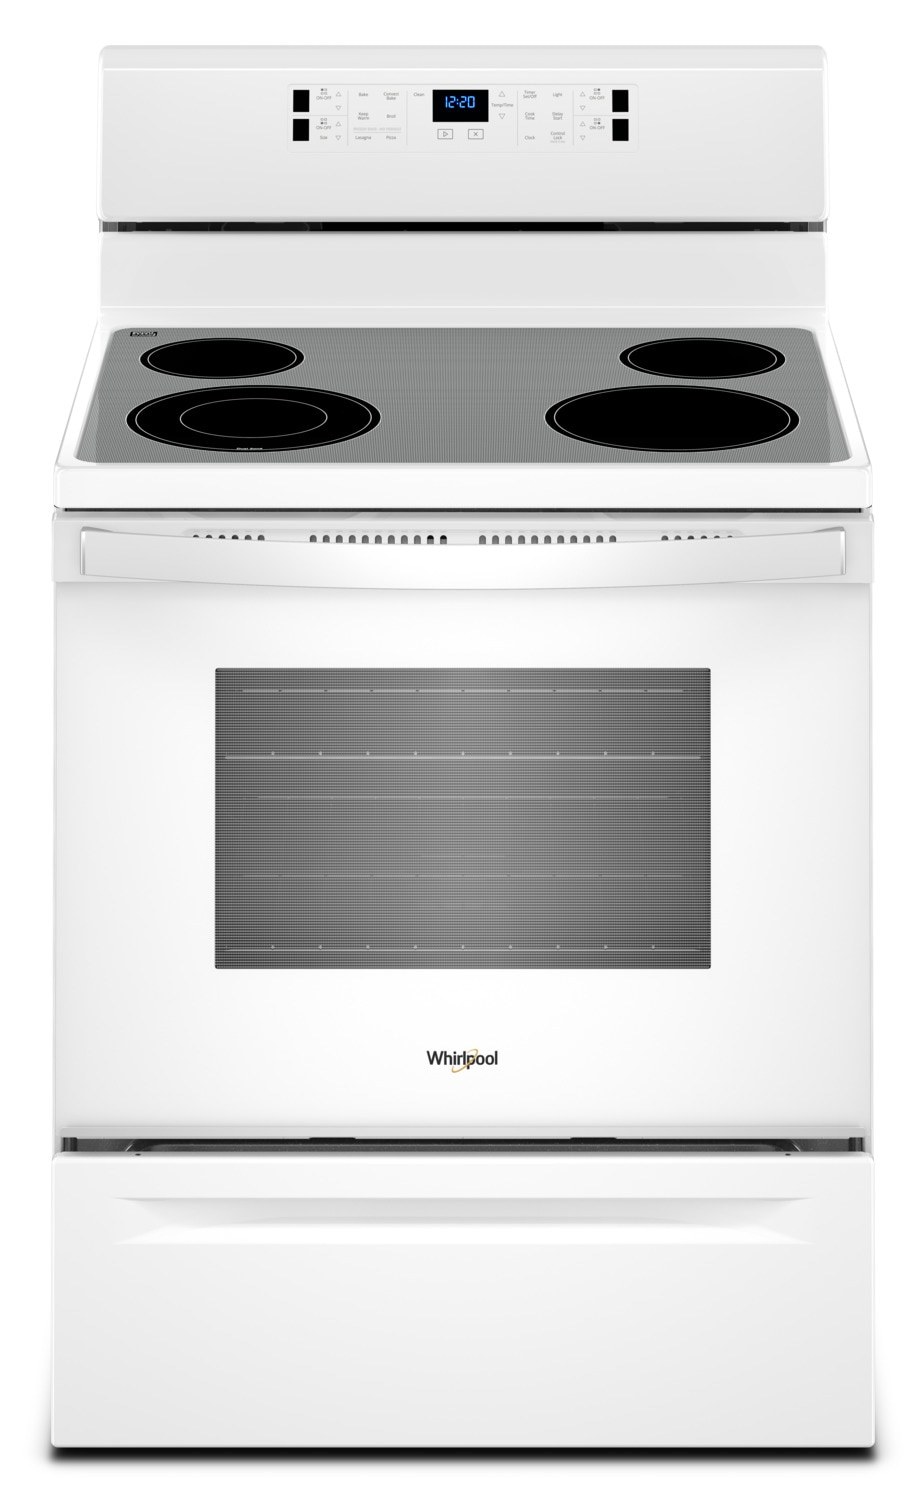 Whirlpool White Freestanding Electric Range (5.3 Cu. Ft.) - YWFE520S0FW